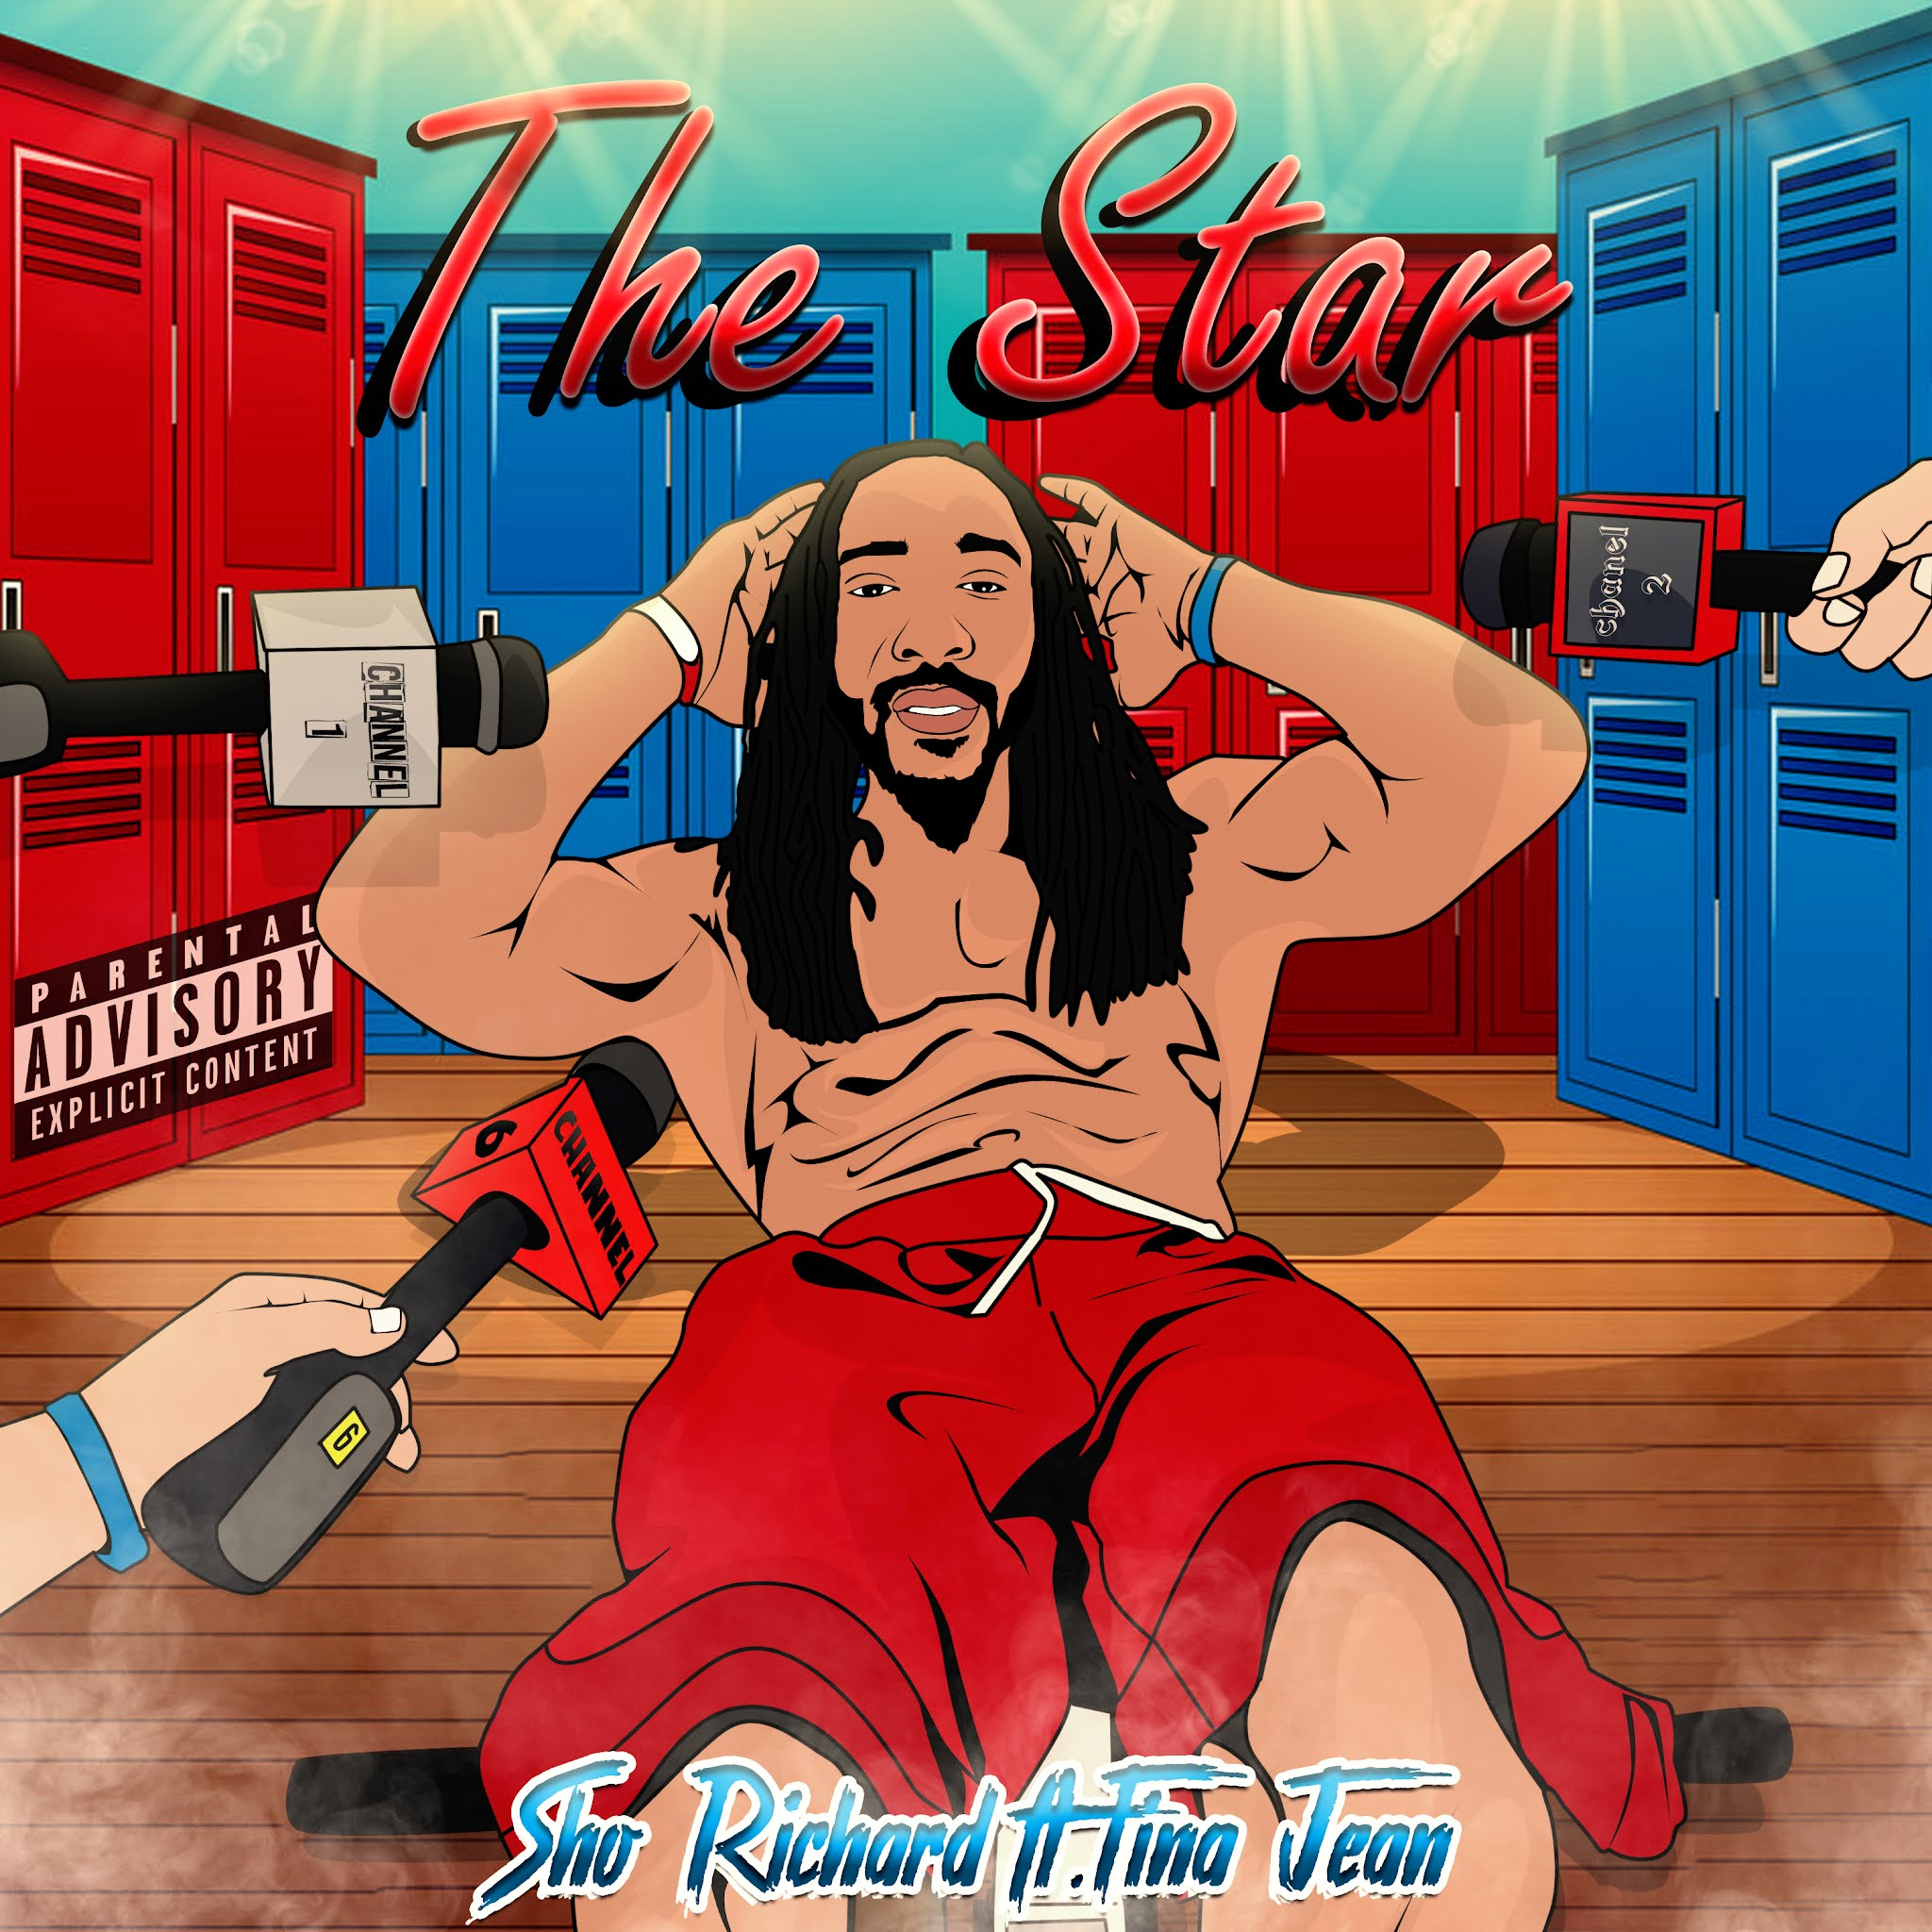 New Music: The Star on Spotify, Apple Music, Amazon, Tidal and more